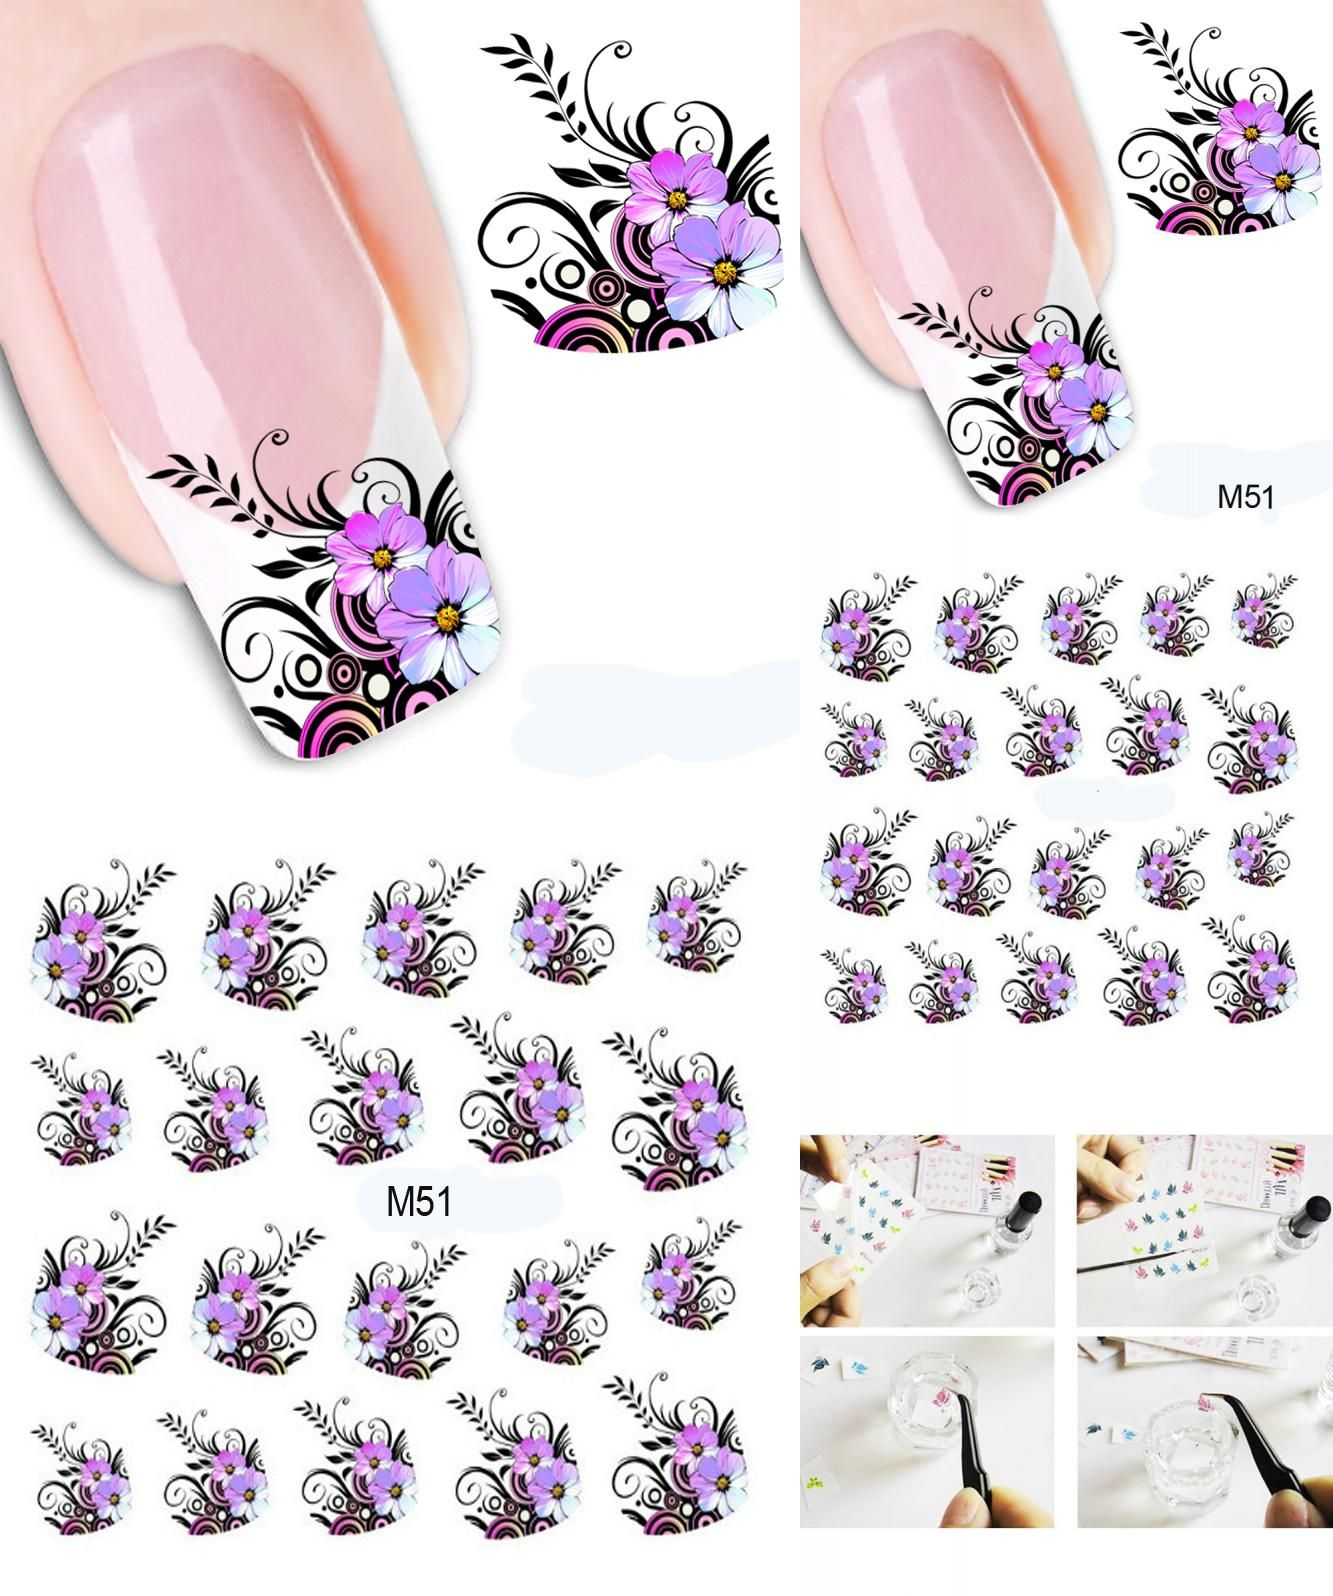 Visit To Buy 1pcs Beauty Nail Art Water Decals Transfer Stickers